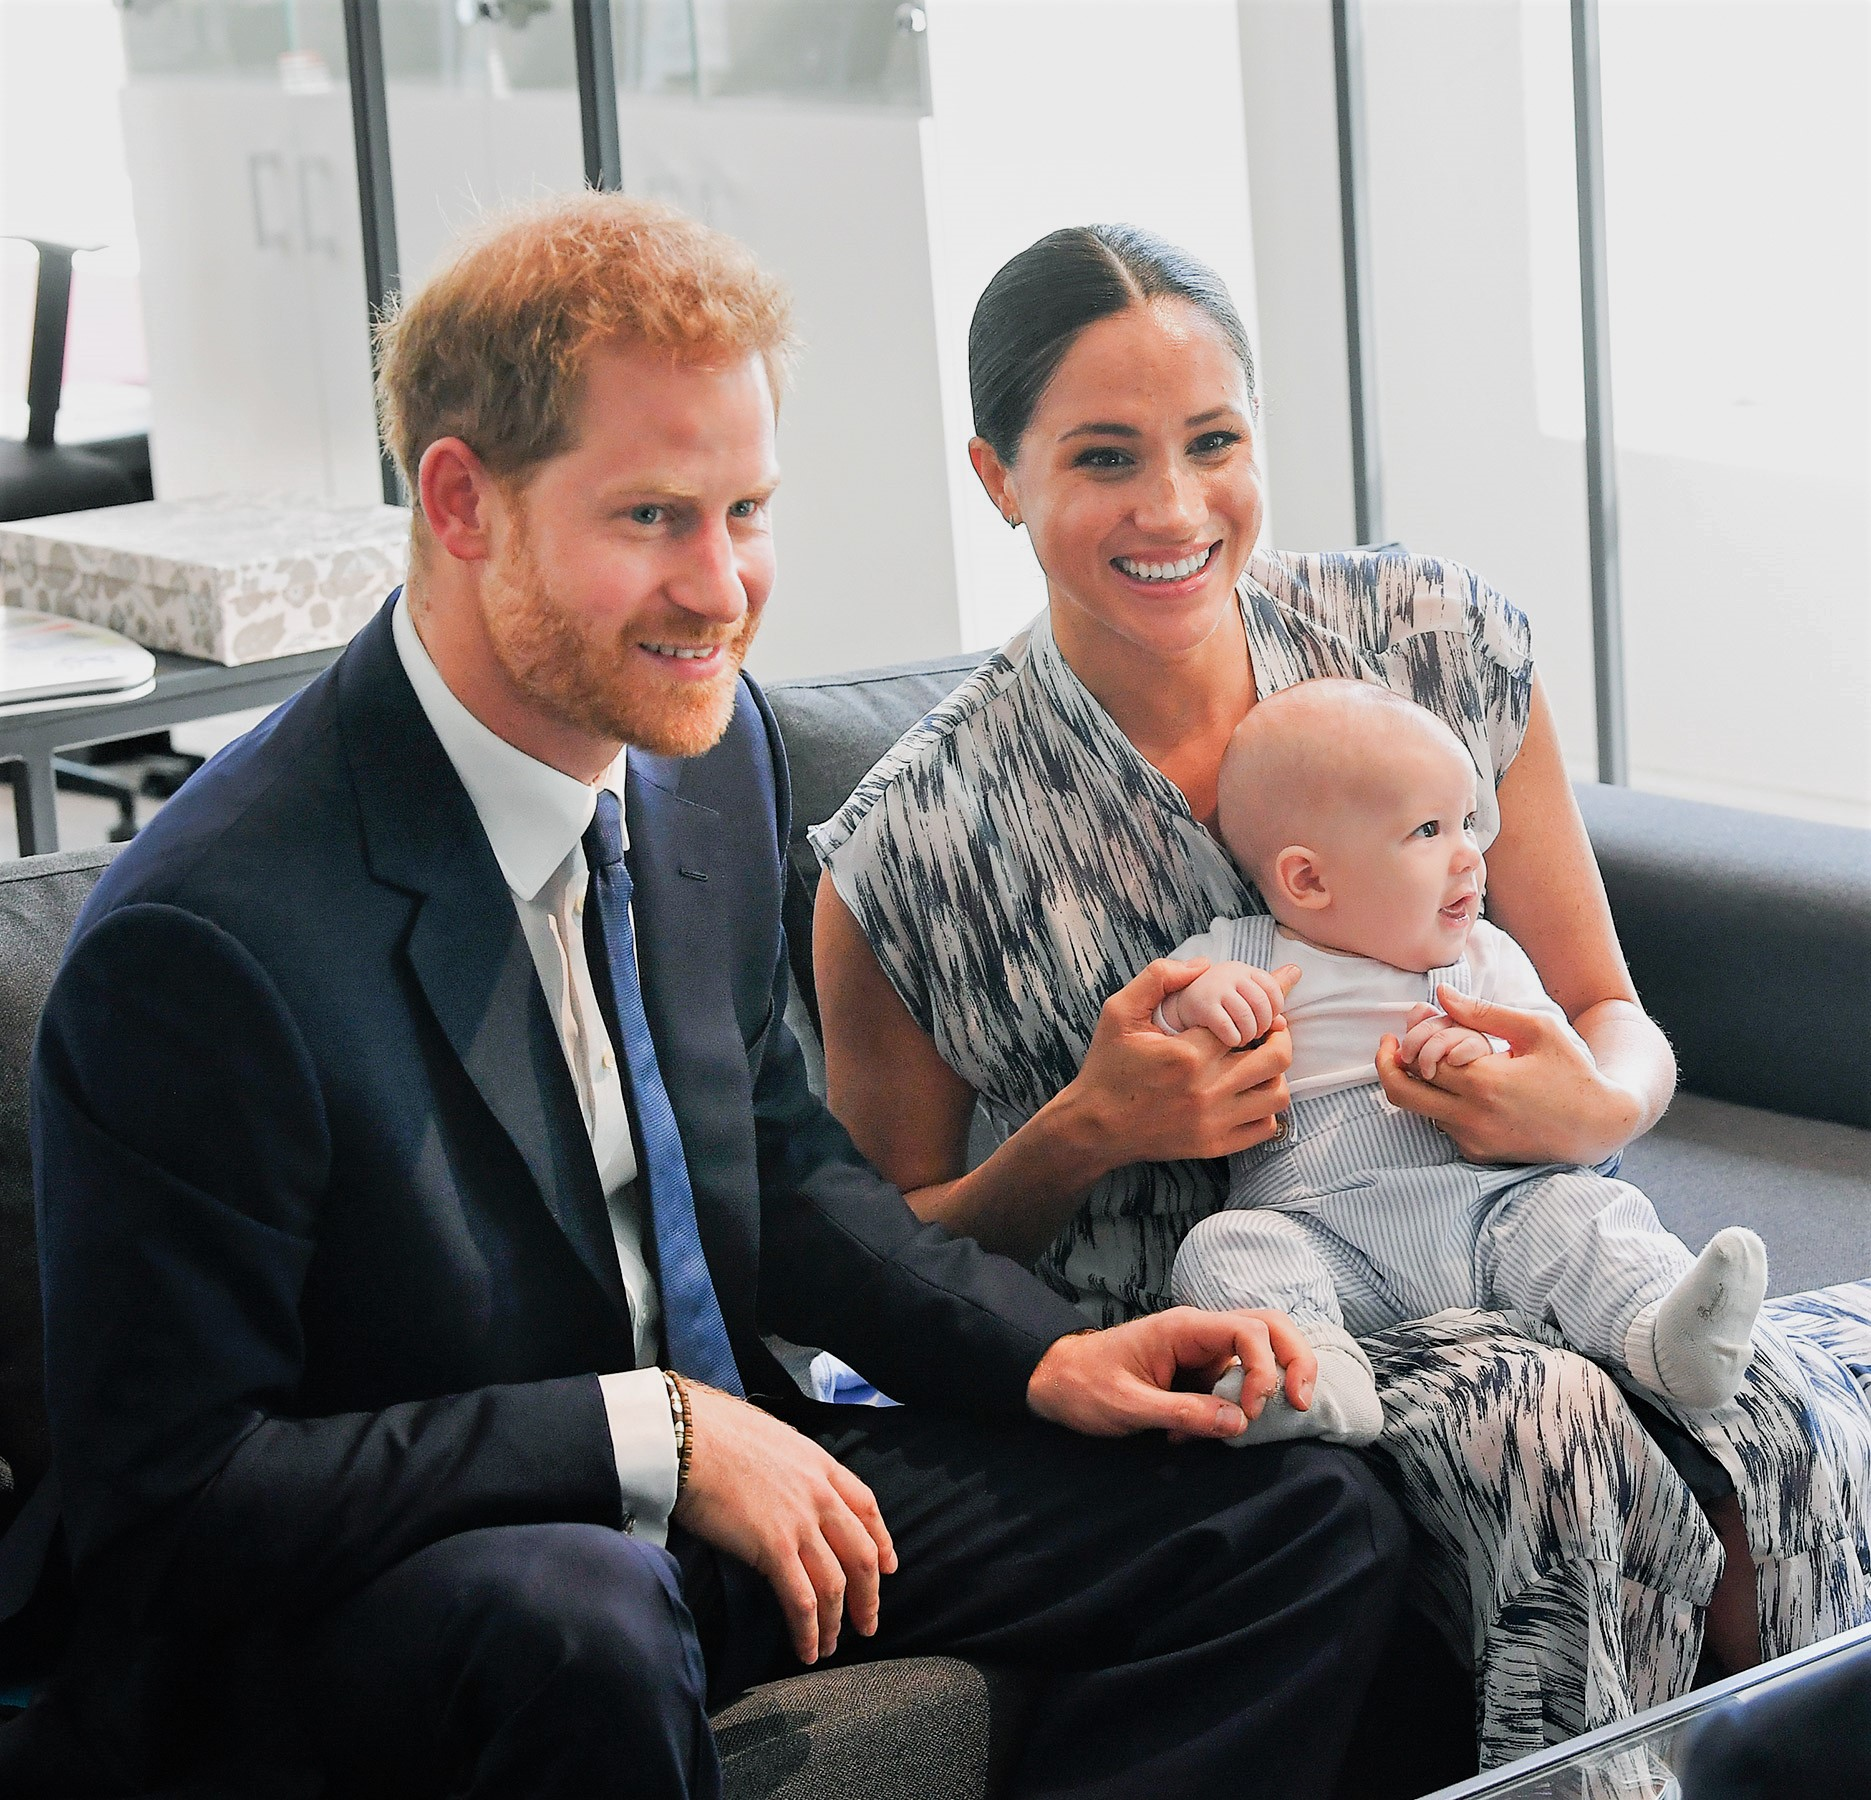 Meghan Markle and Prince Harry Holding Baby Archie in South Africa